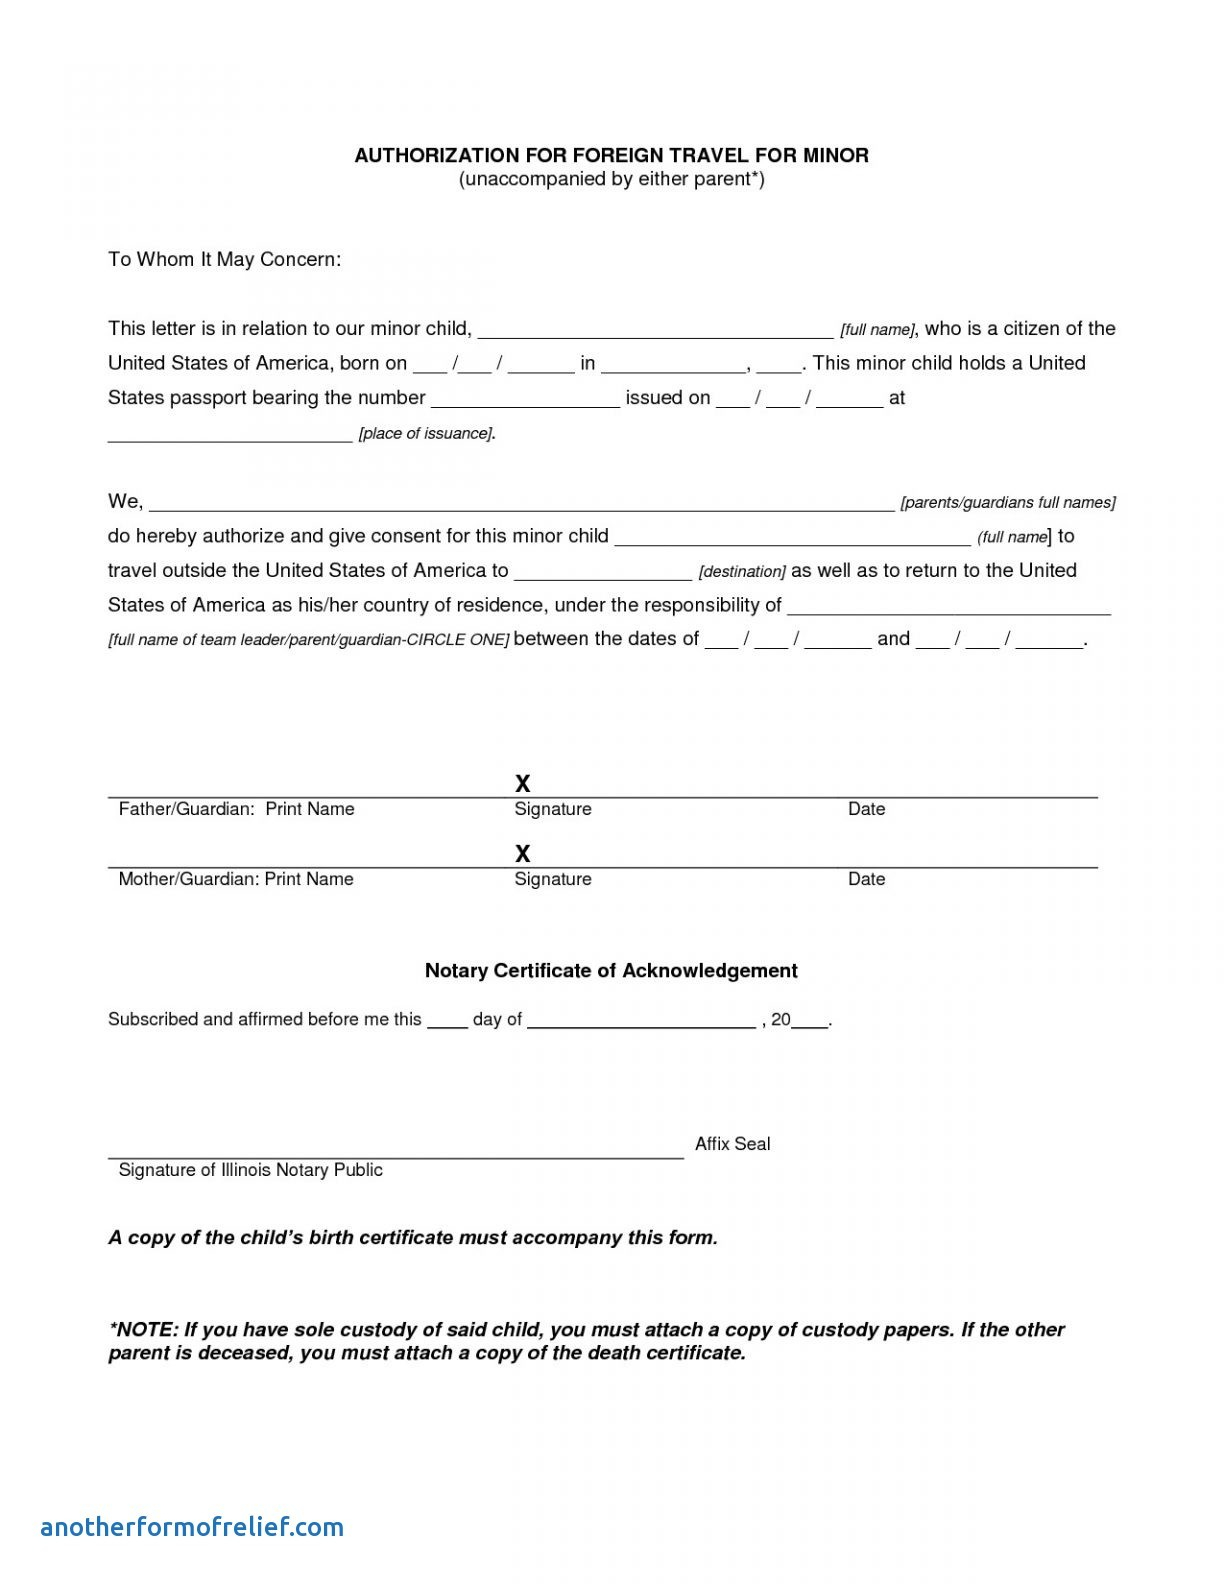 Notarized Letter Template for Child Travel - Permission Letter to Travel Refrence Microsoft Word Consent